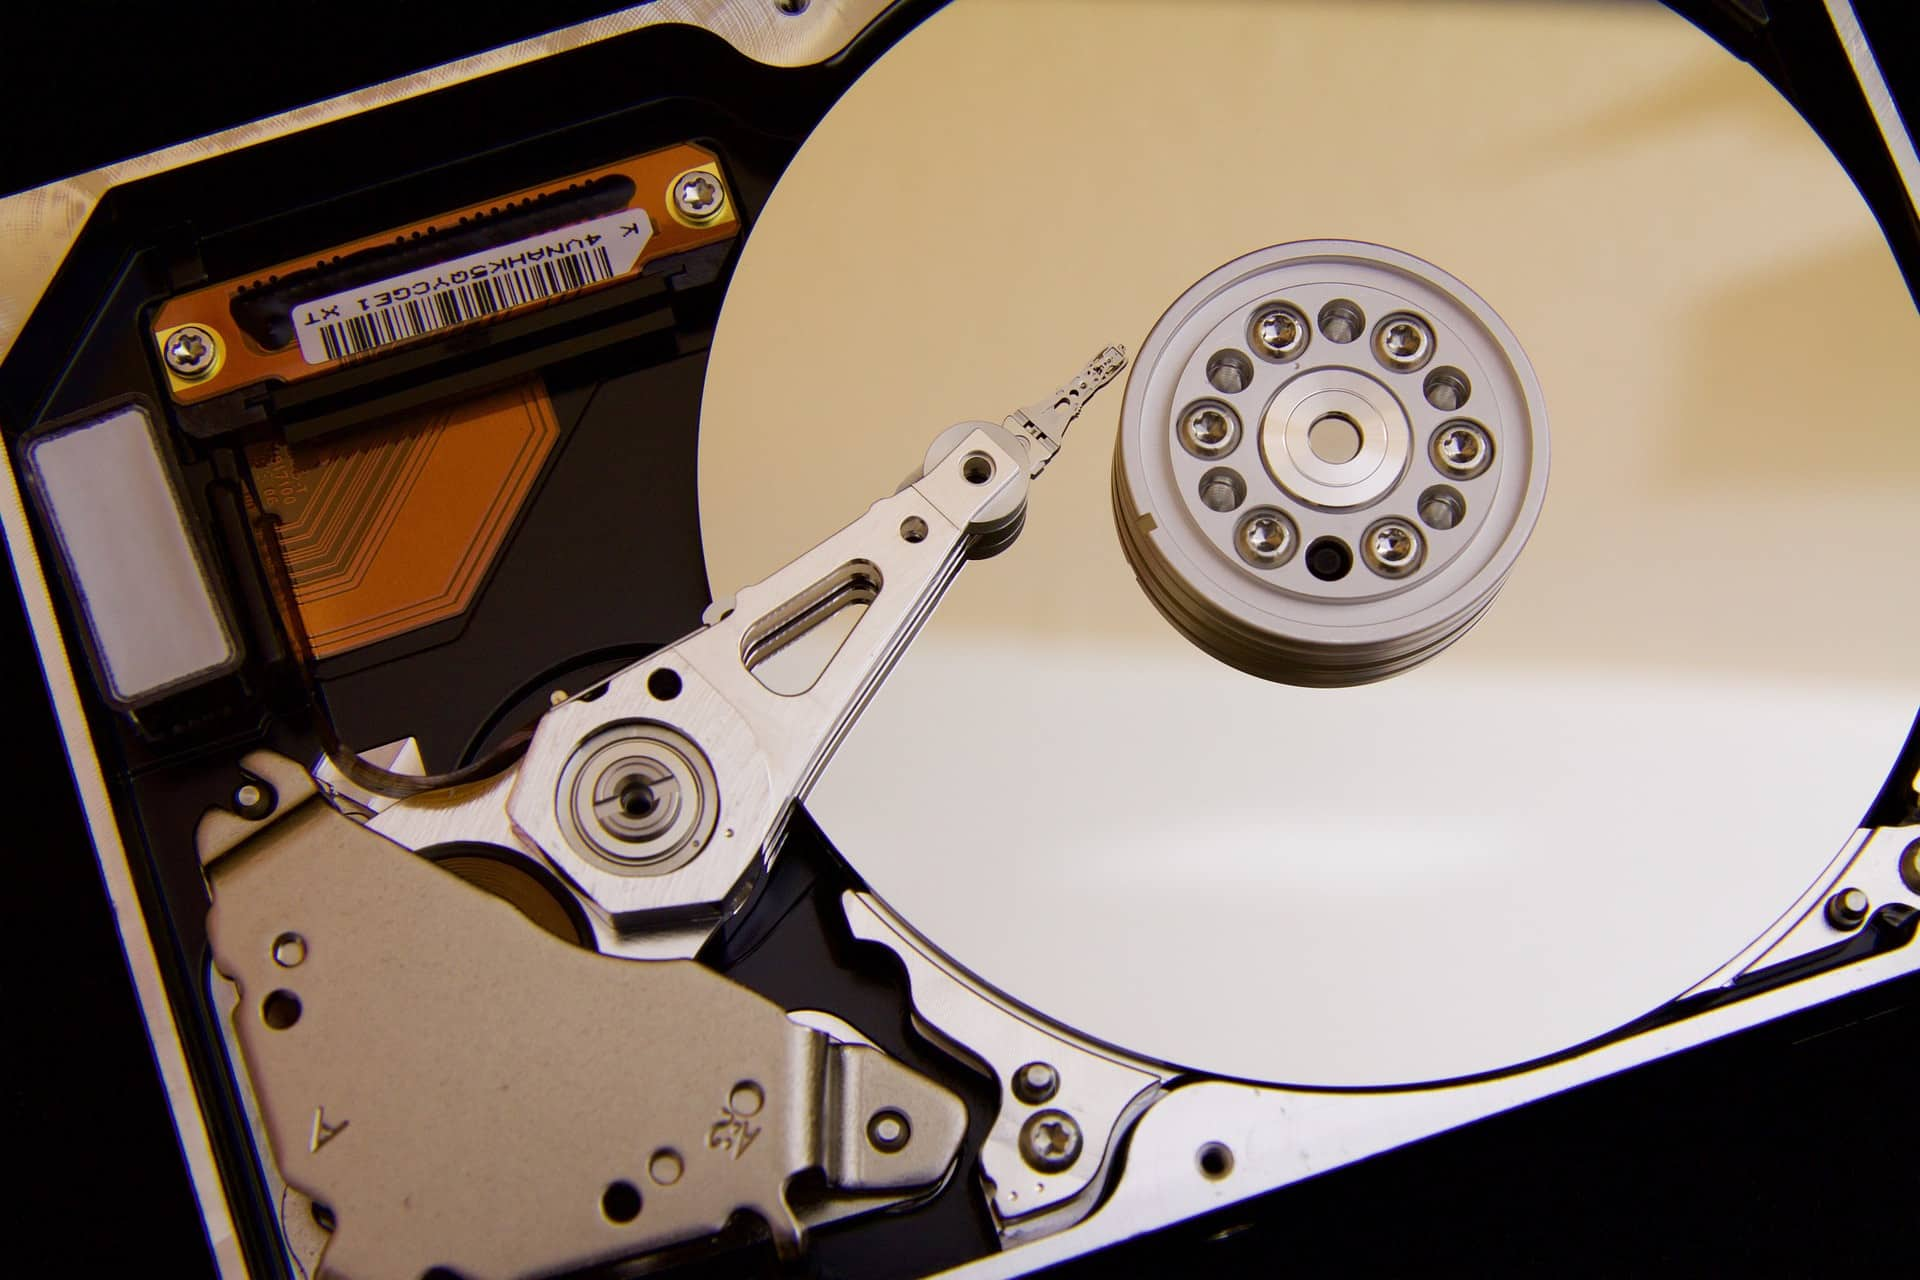 unlimited data recovery software for pc free download full version